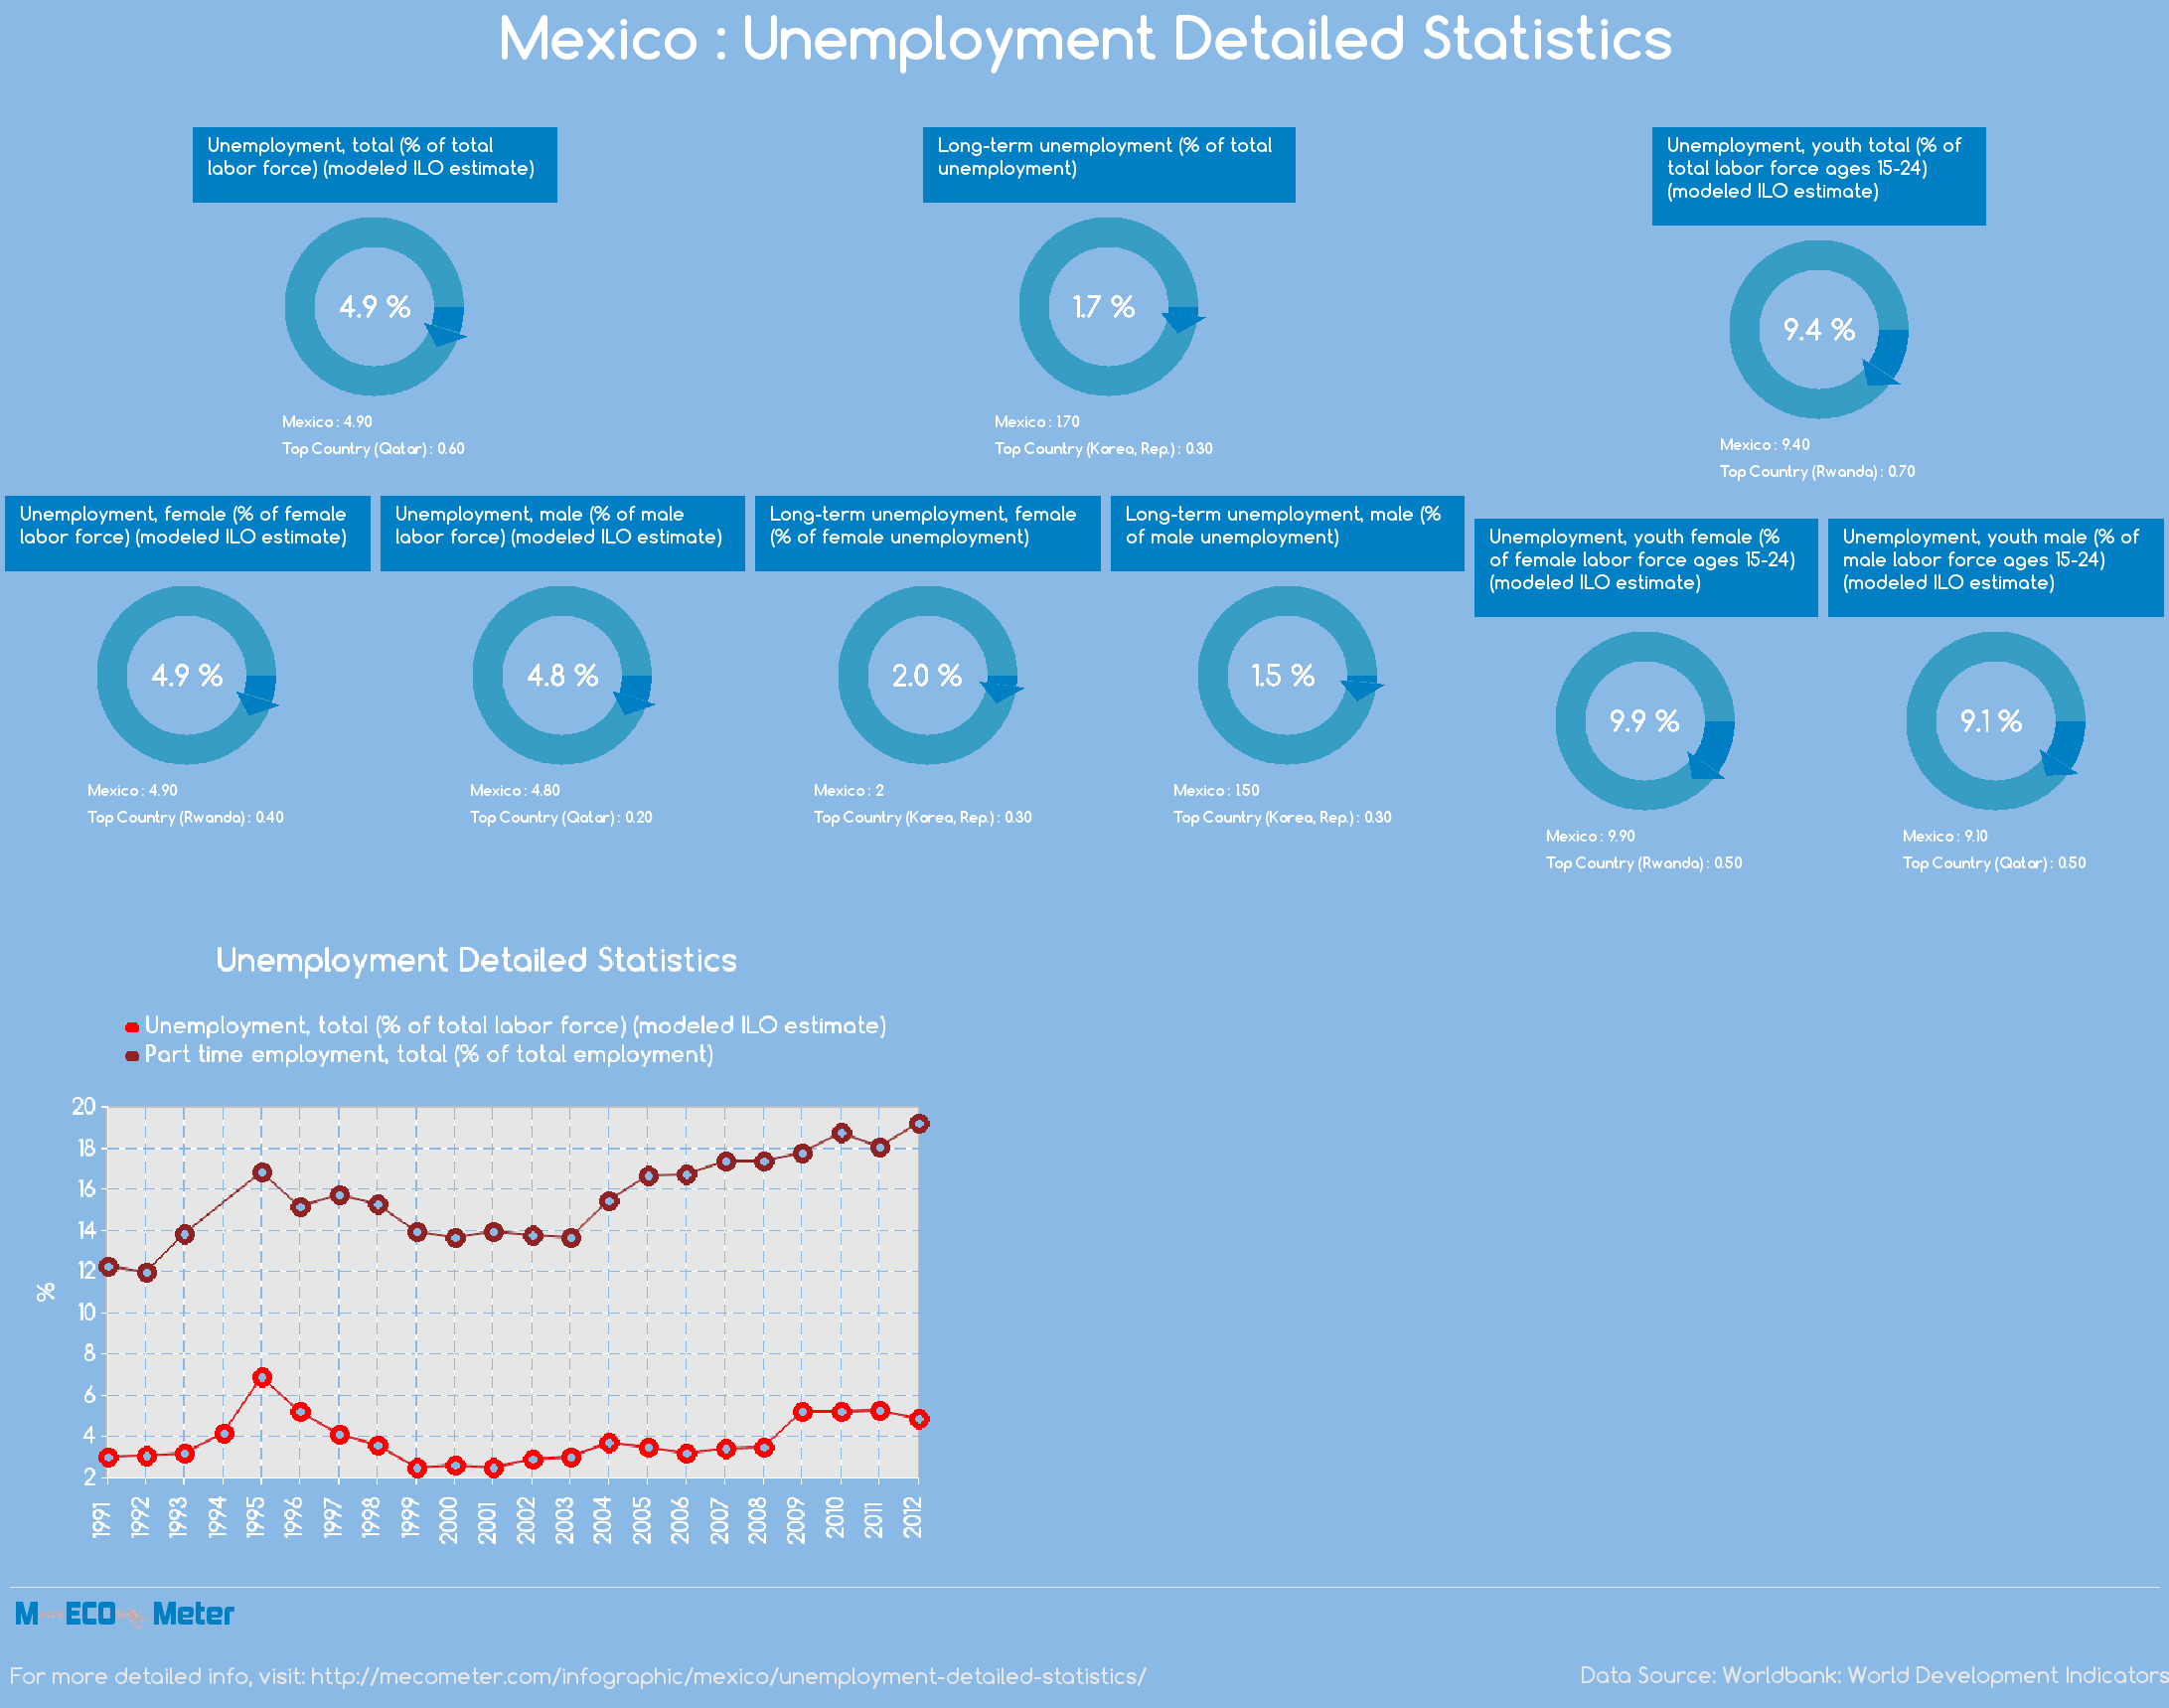 Mexico : Unemployment Detailed Statistics